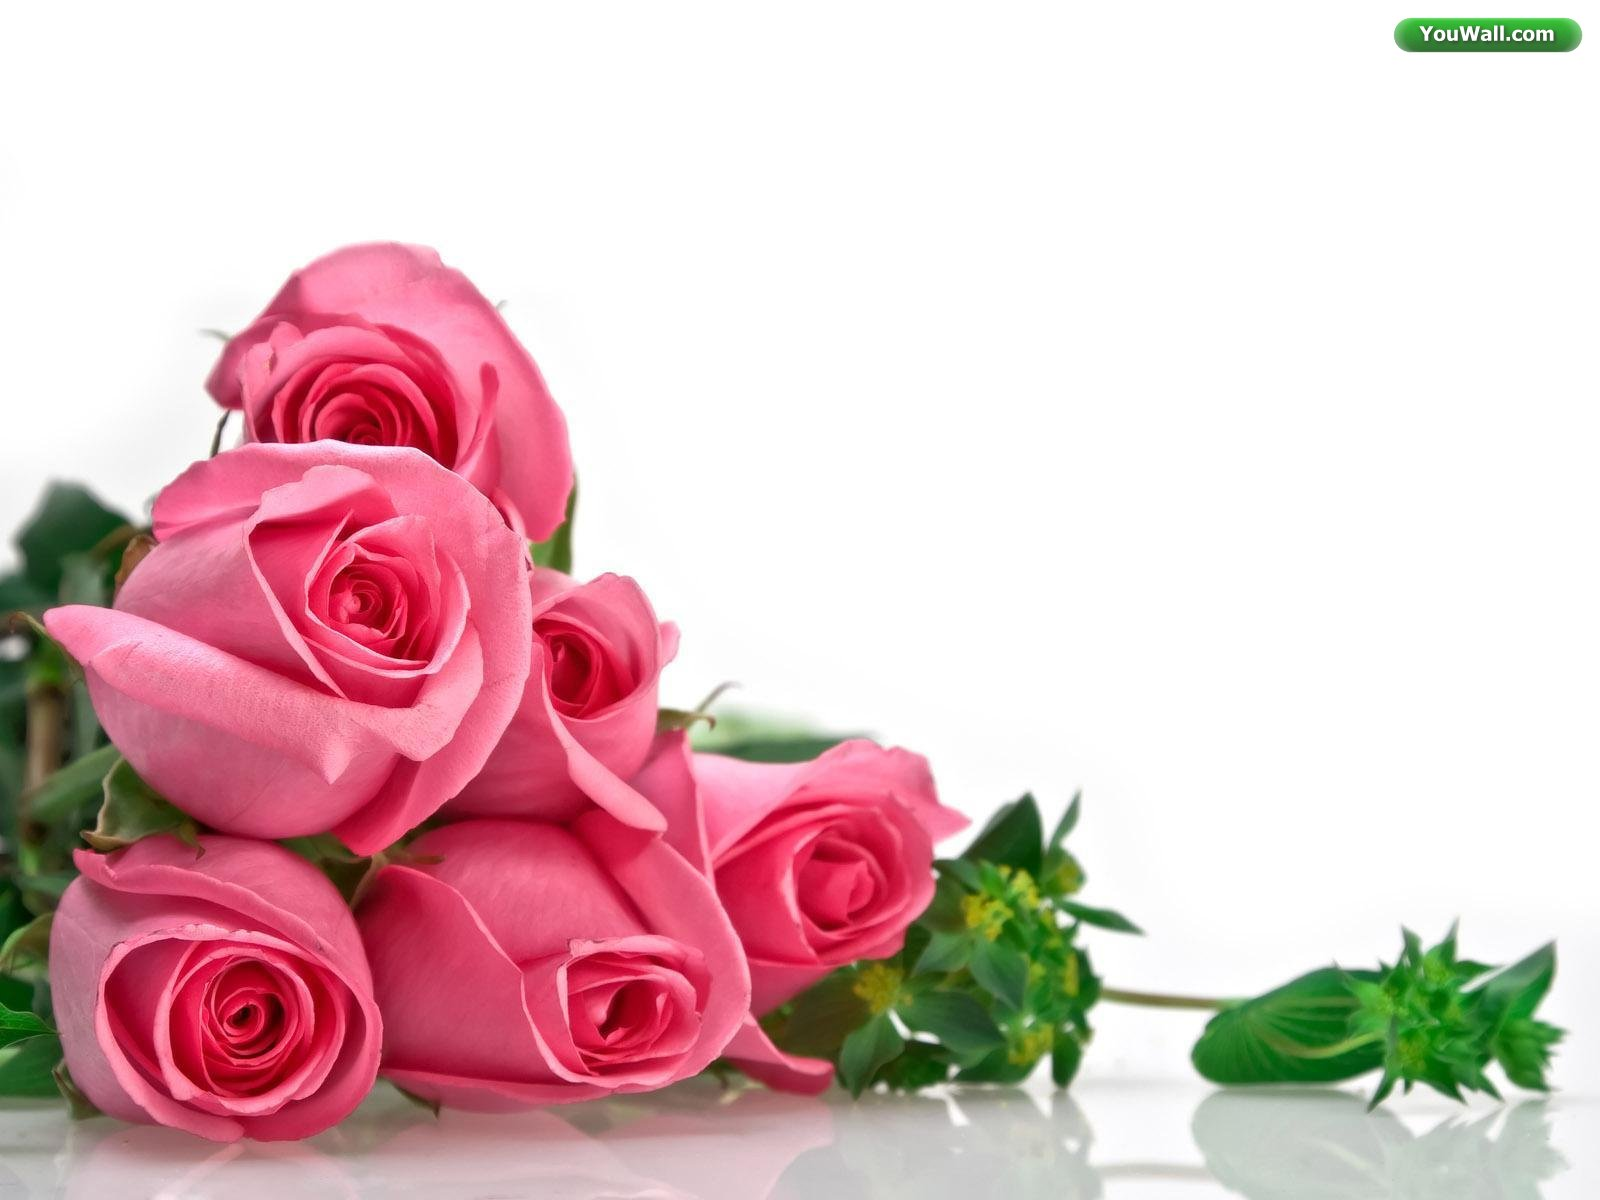 Roses Background Wallpaper.